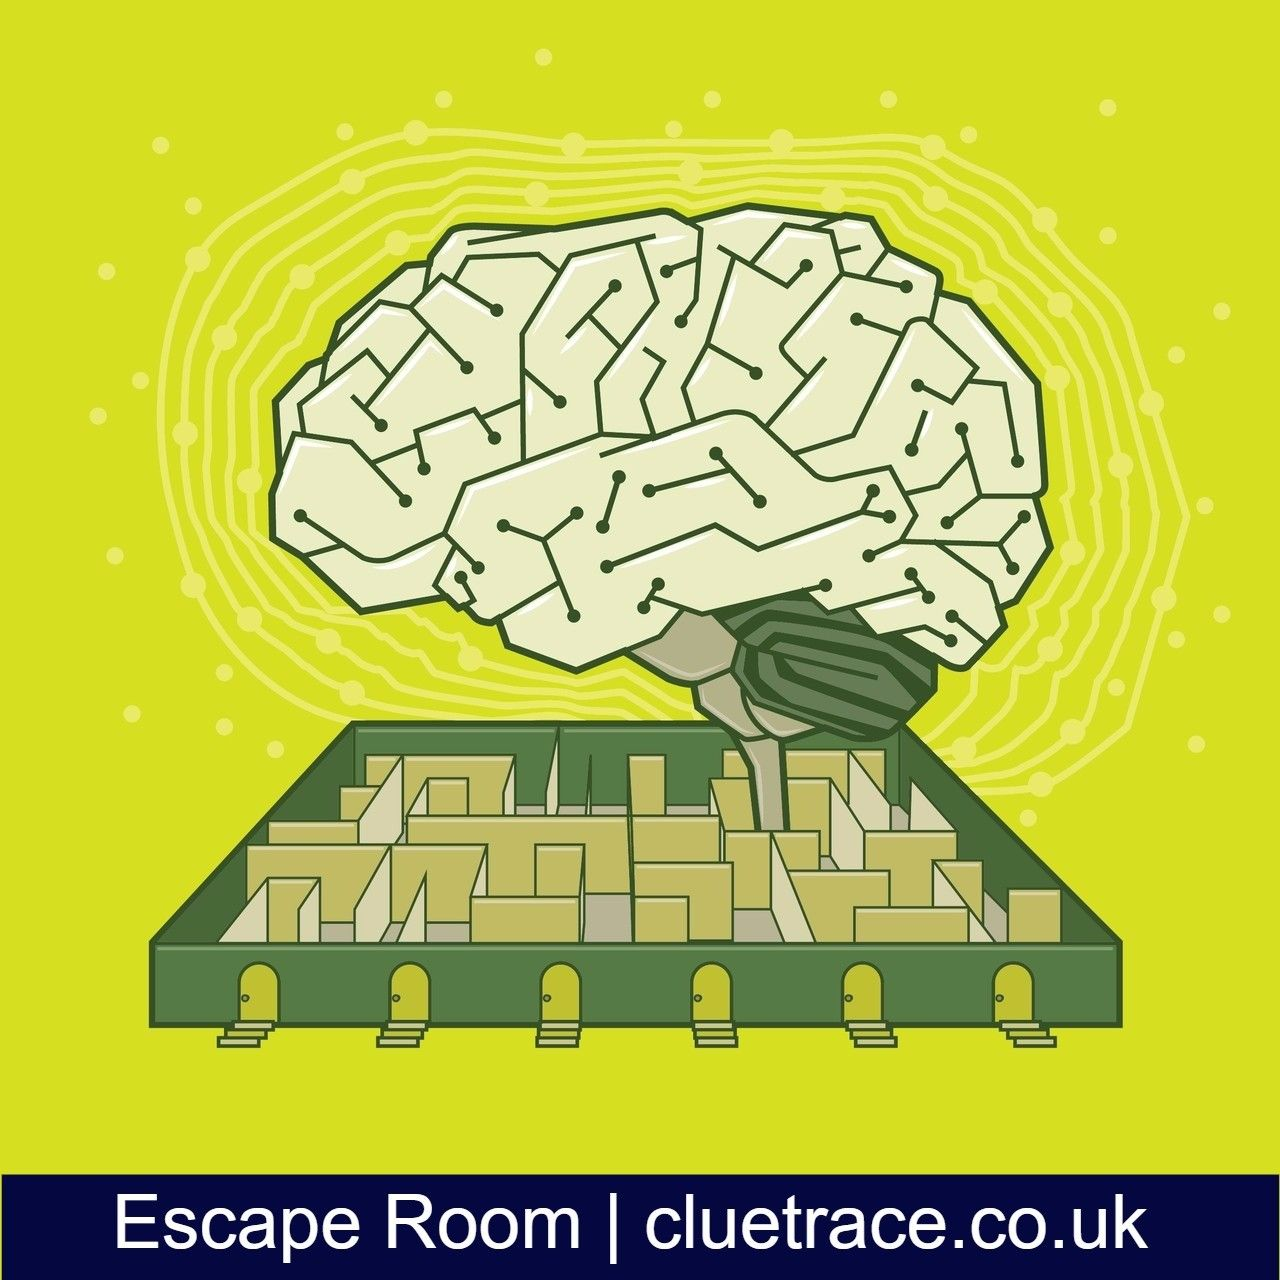 Cluetrace is the new exciting live escape game in #London. #escapegame | http://wu.to/U3ljmJ